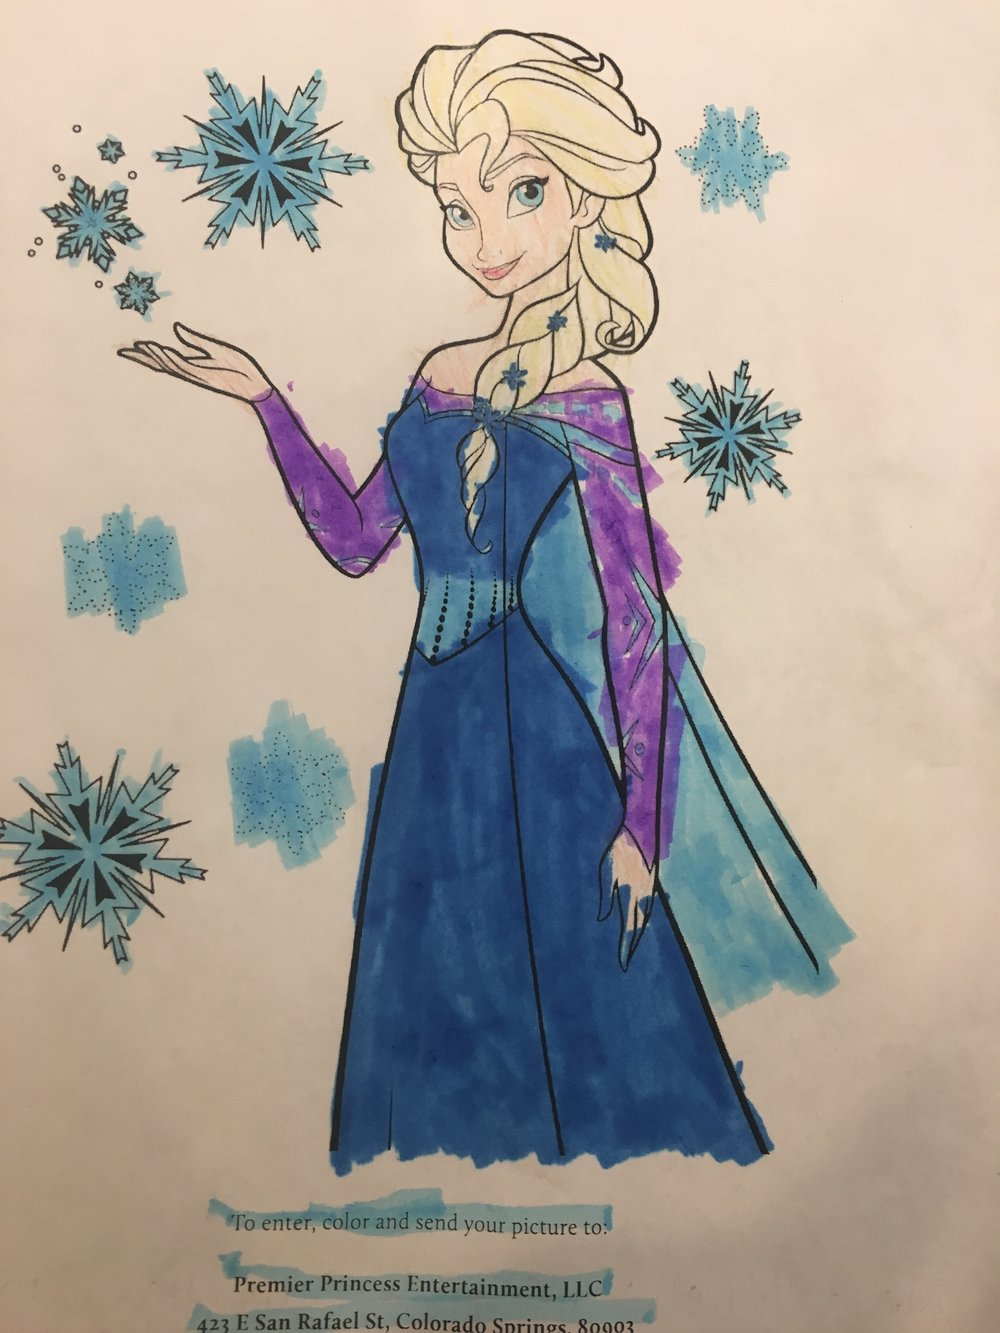 Congratulations to this month's winner, Princess Neva from South Dakota! Her beautiful artwork will be displayed on our site until our next winner is announced next month!